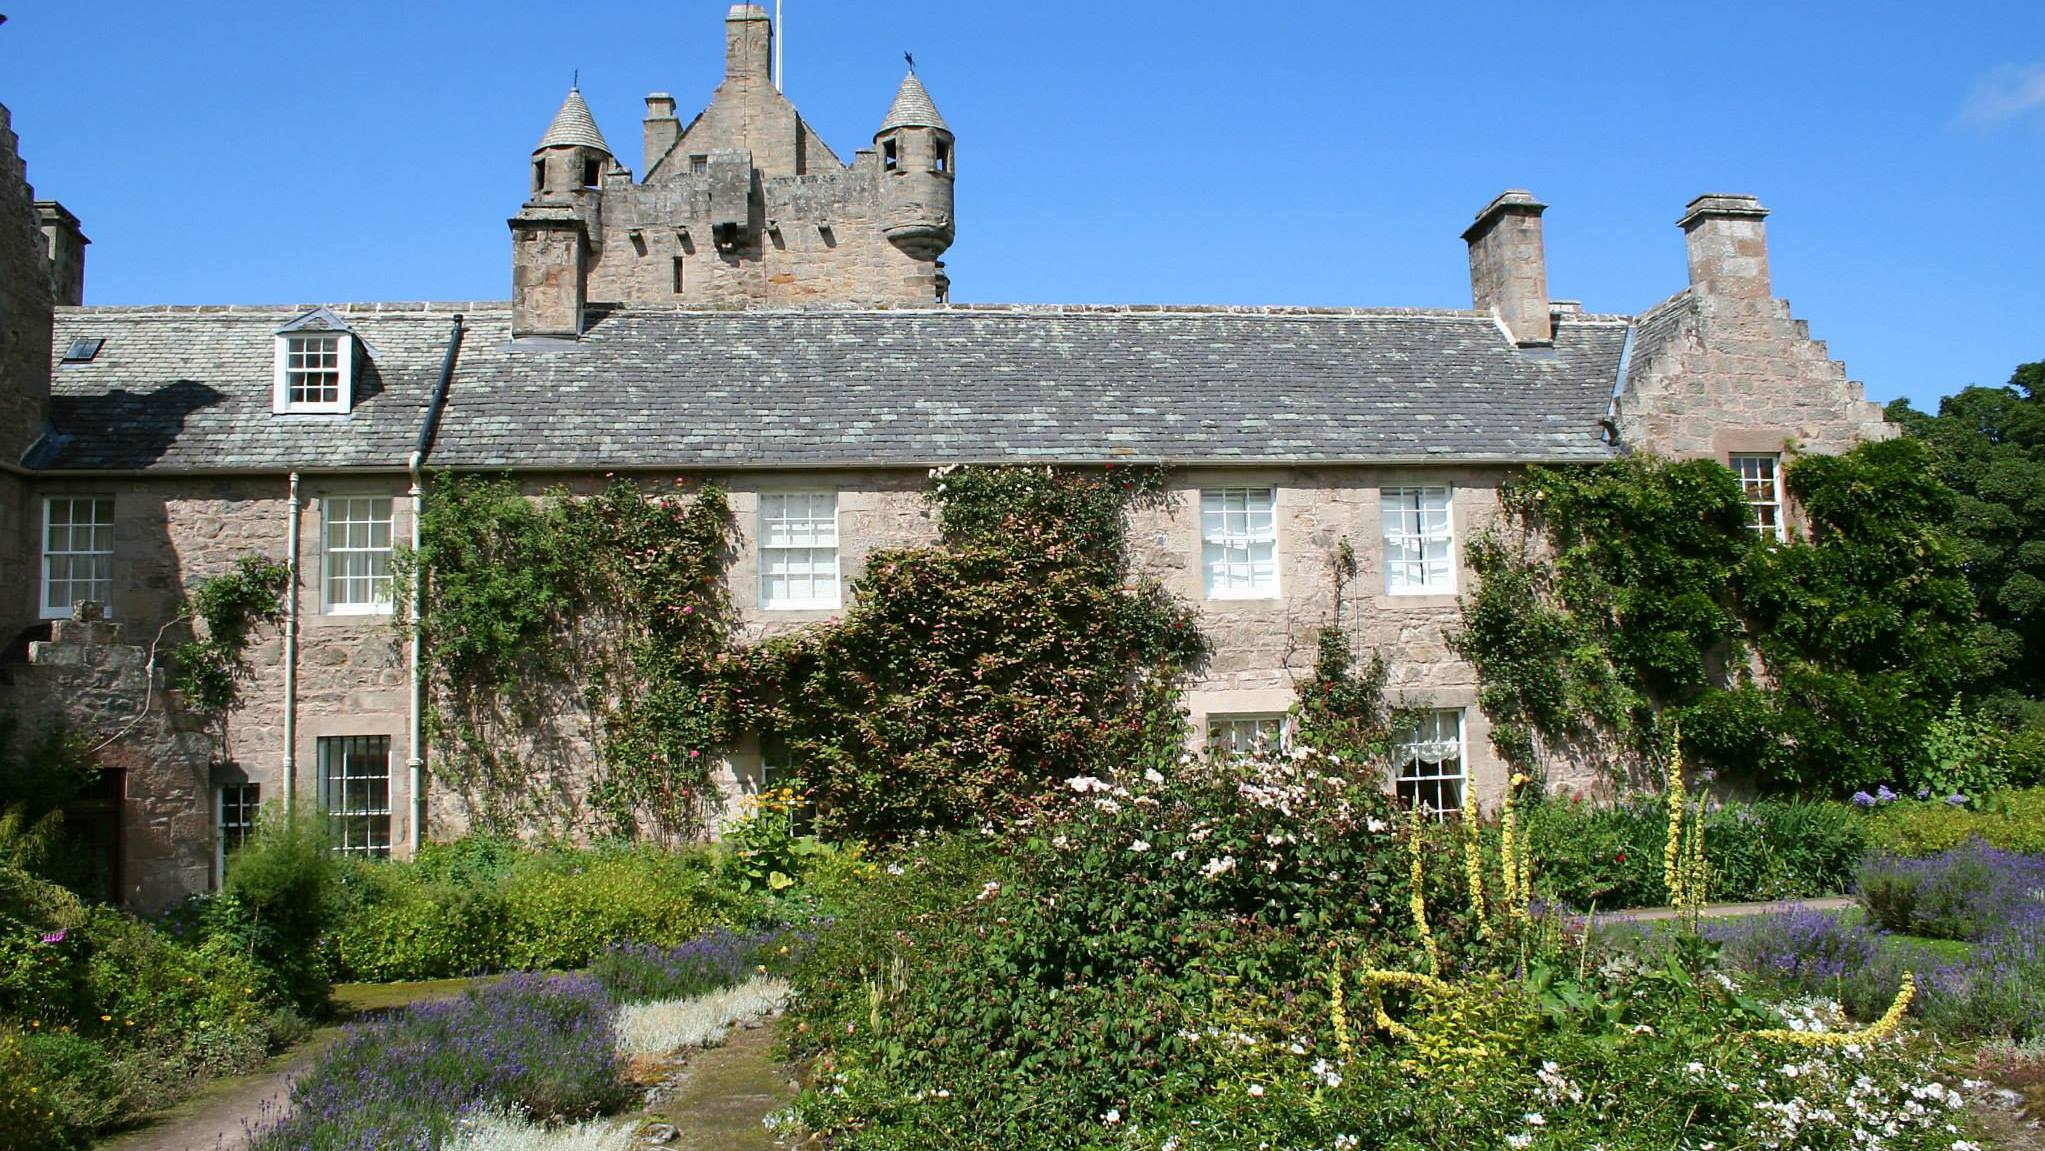 Cawdor Castle near Inverness